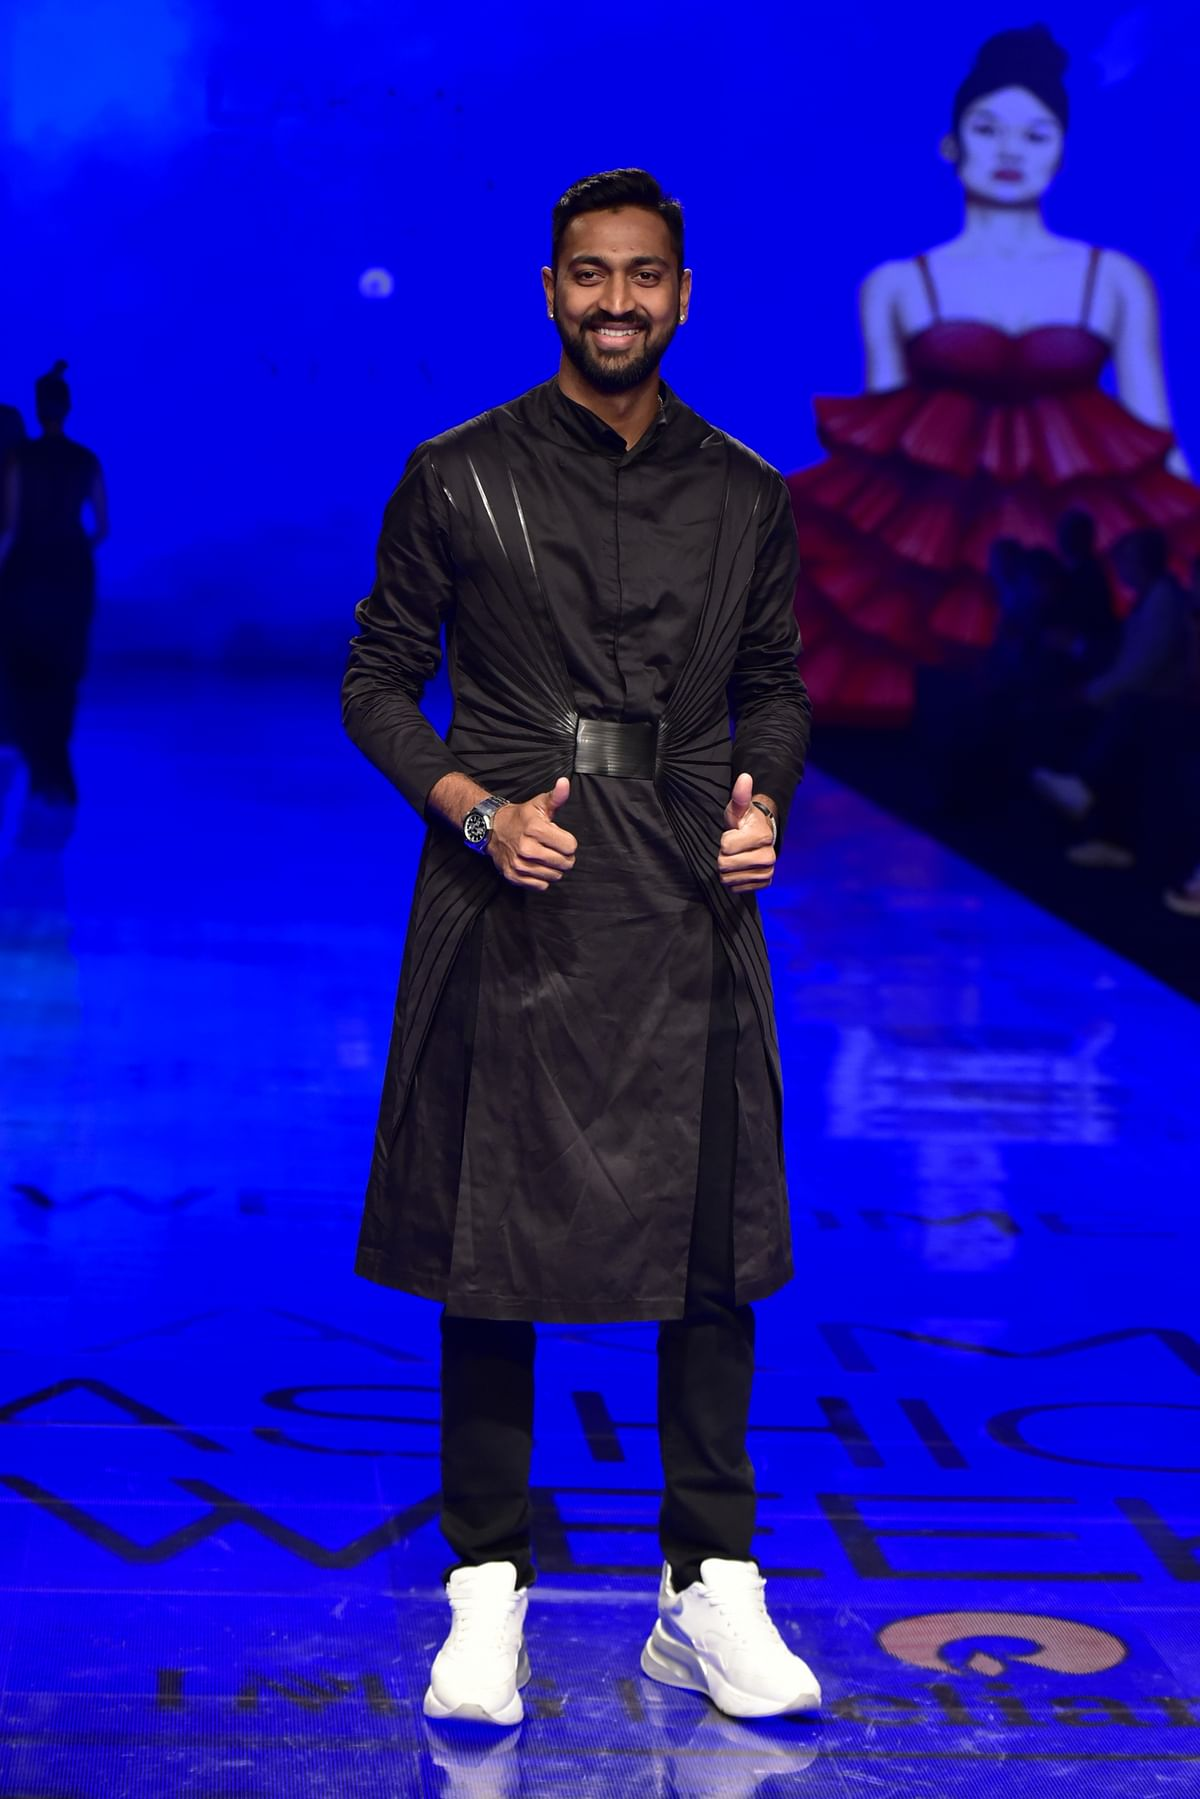 Highlights from Day 1 at Lakmé Fashion Week Winter/Festive 2019